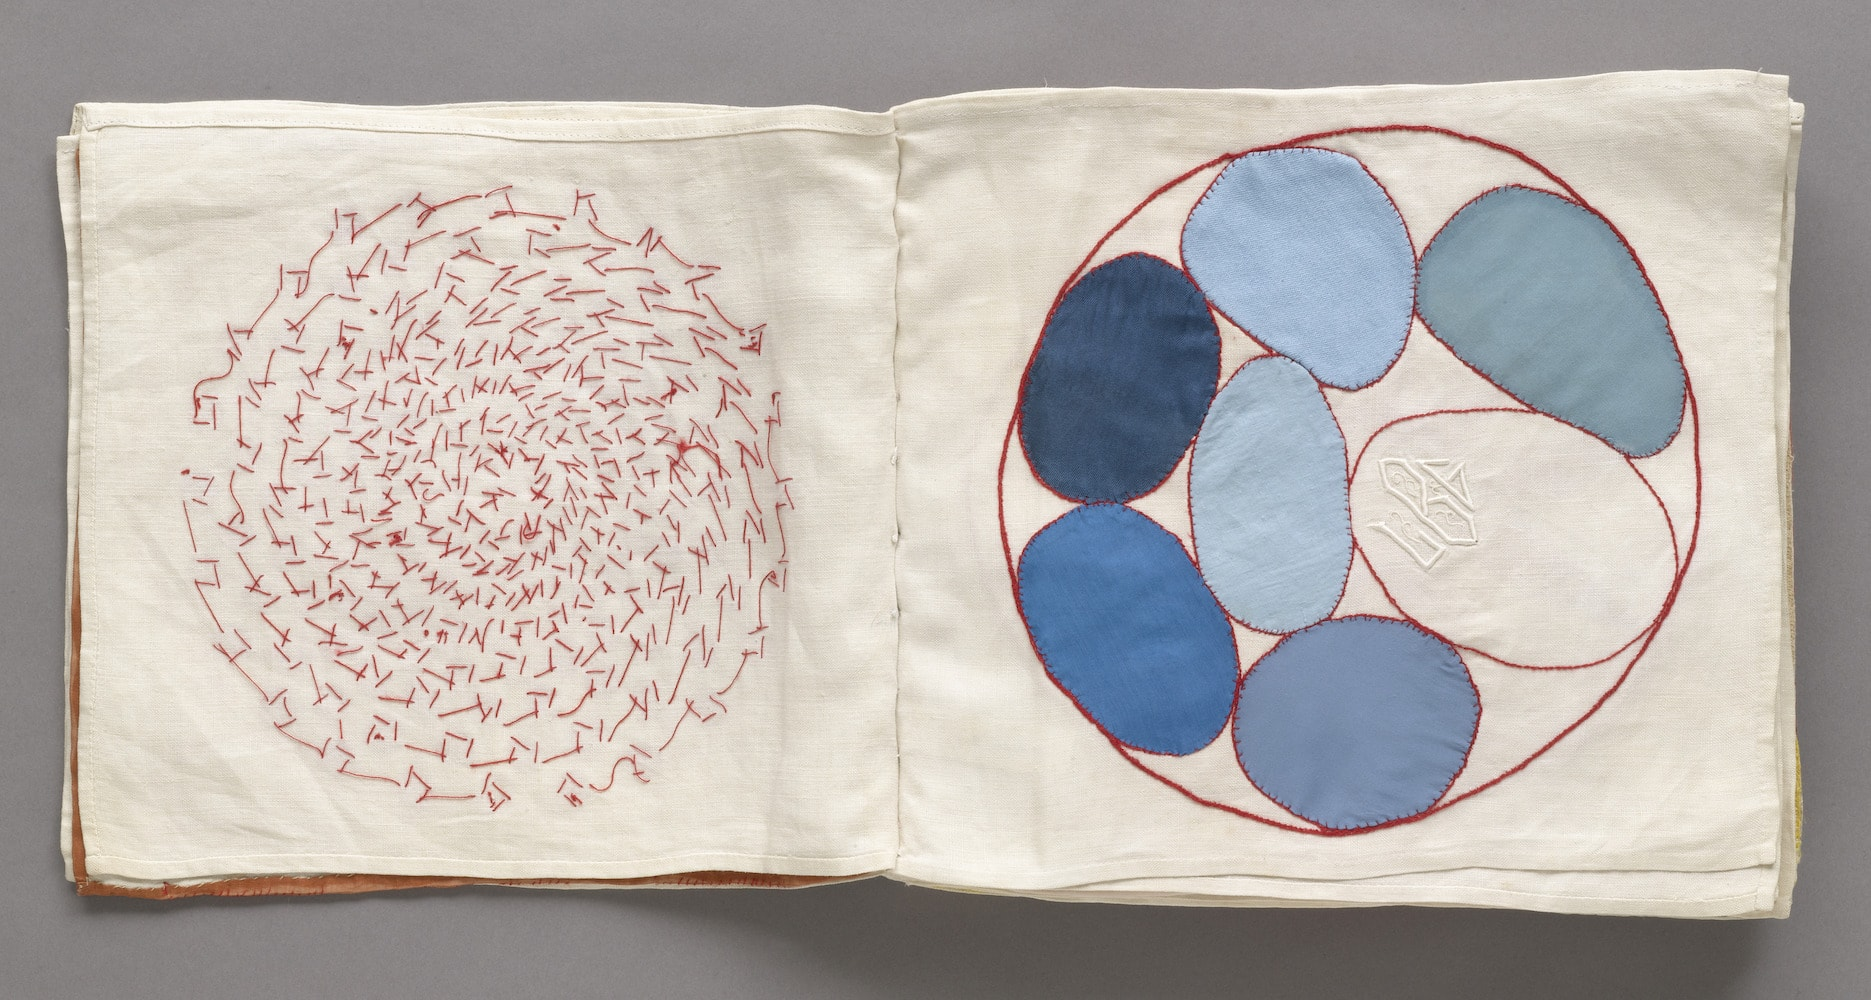 Louise Bourgeois (1911–2010). No. 4 of 34 from the fabric illustrated book Ode à l'Oubli. 2002. The Museum of Modern Art, New York. Gift of the artist. © 2017 The Easton Foundation/Licensed by VAGA, NY.